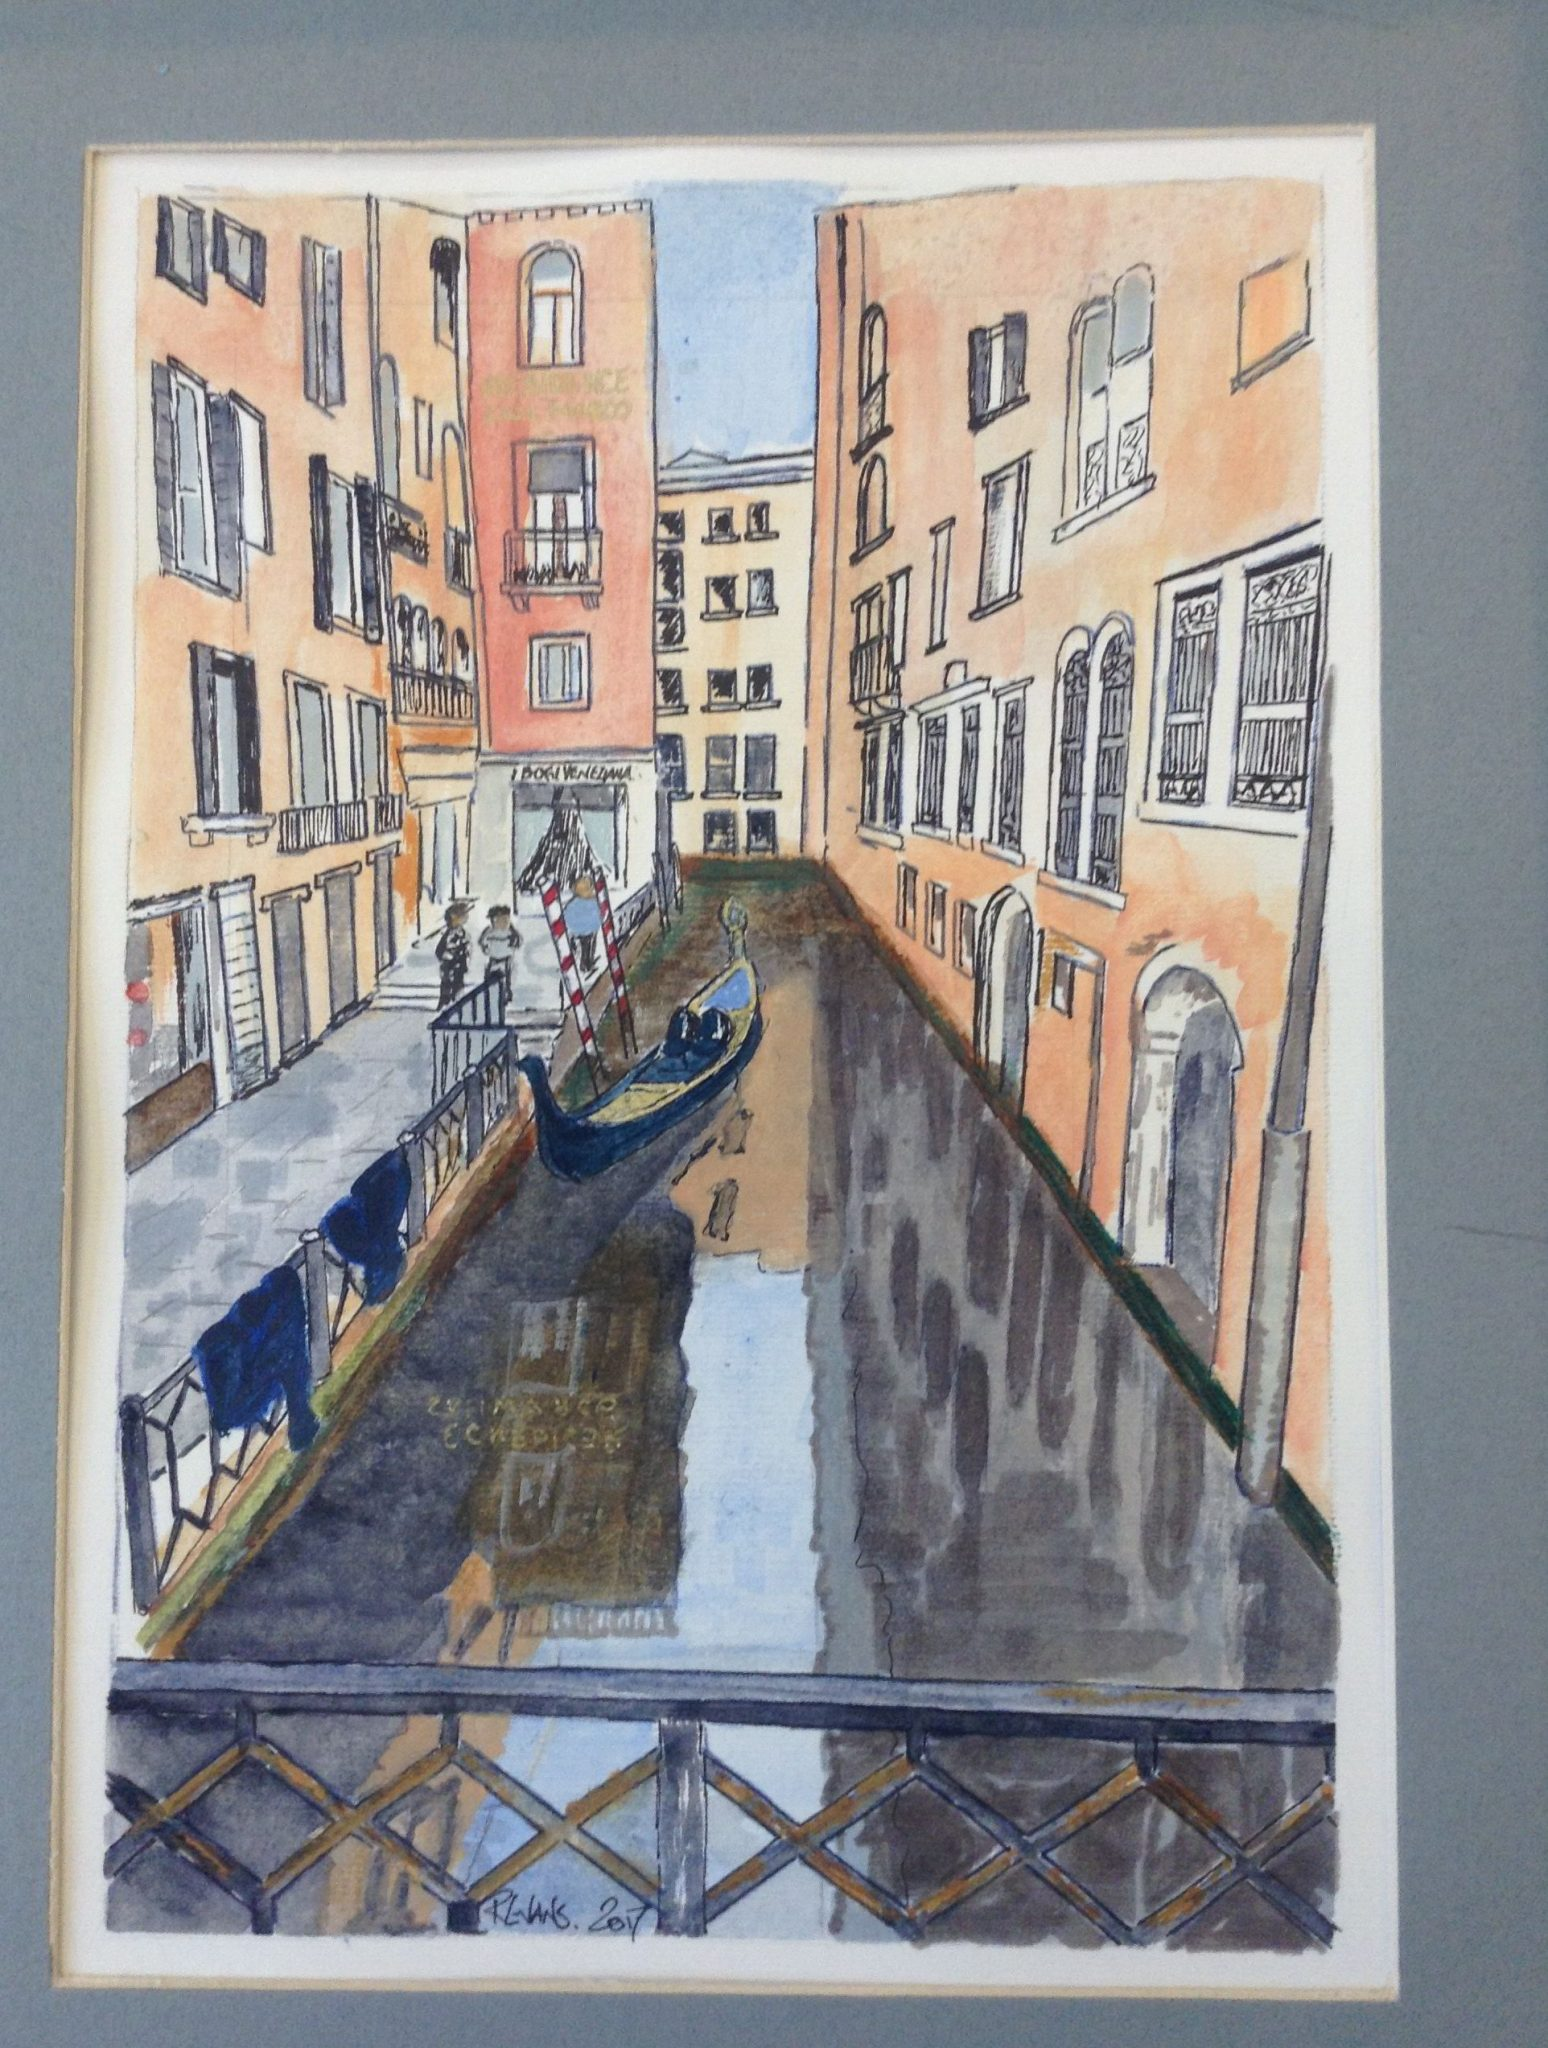 A watercolour painting of a gondola in a Venetian canal